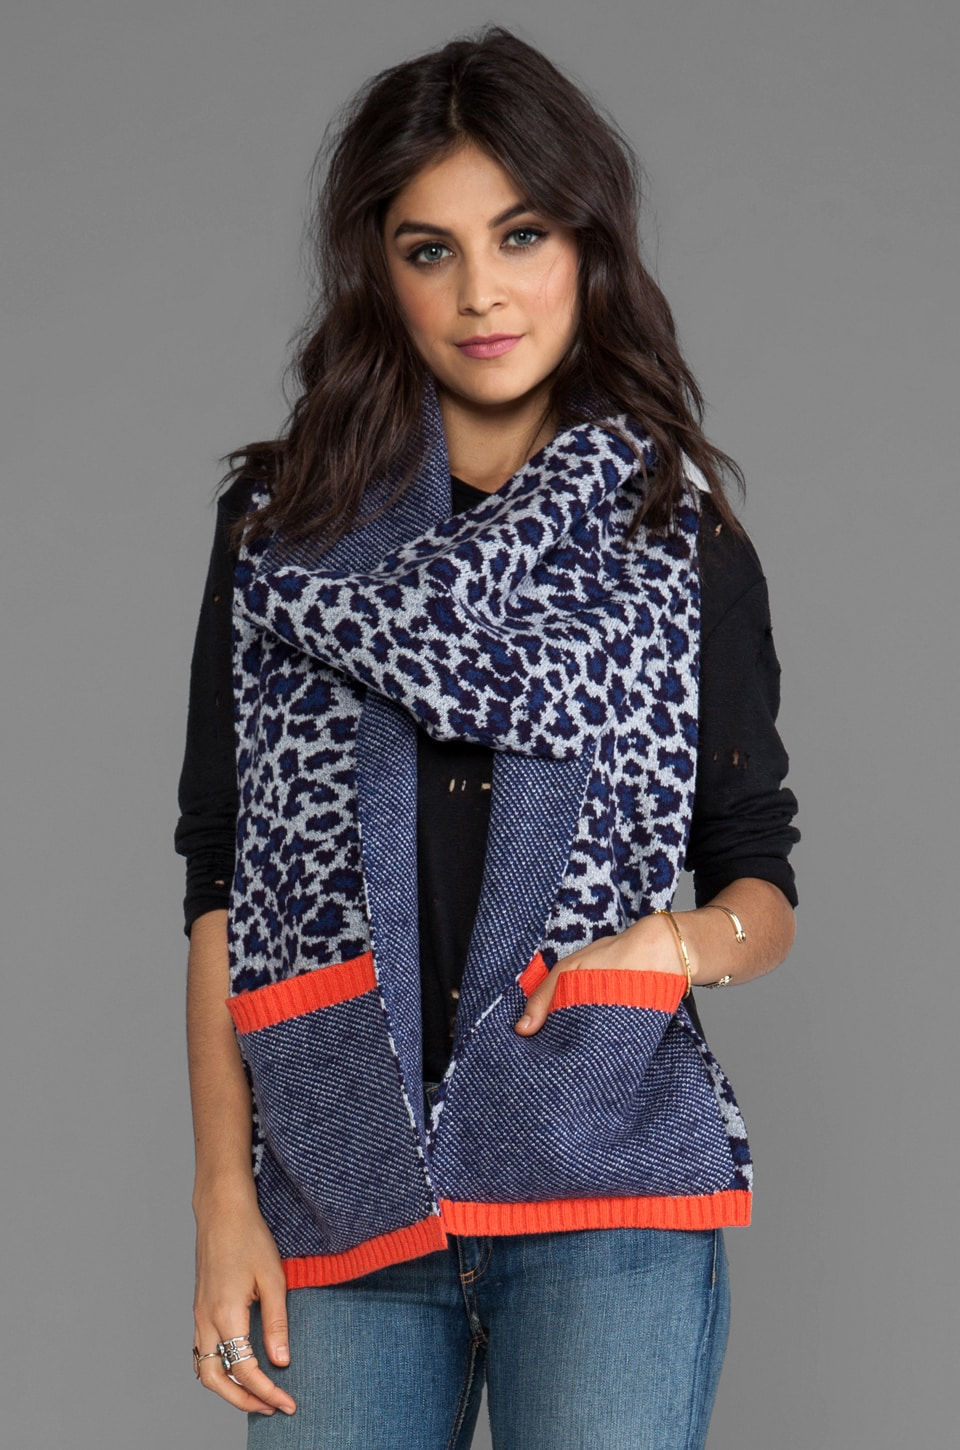 Marc by Marc Jacobs Lenora Leopard Scarf in Royal Purple Multi